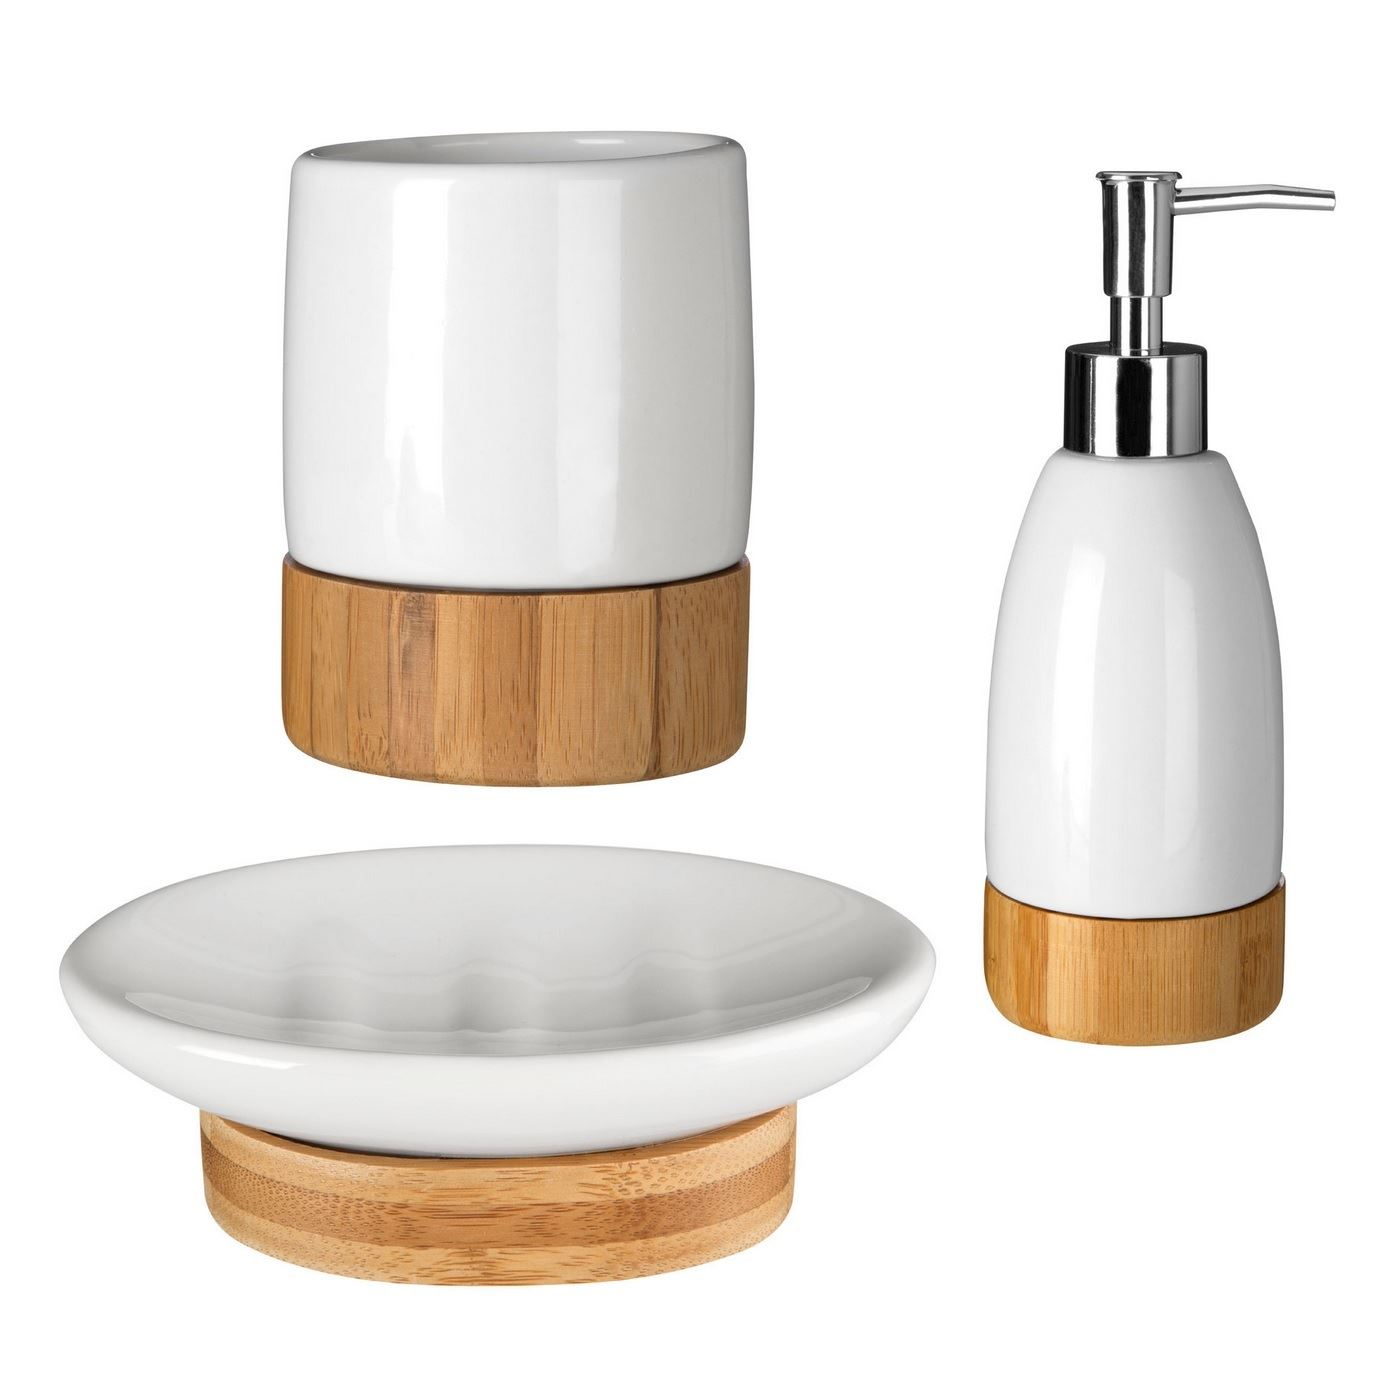 Earth white dolomite wooden bamboo base bathroom for Bathroom accessories images